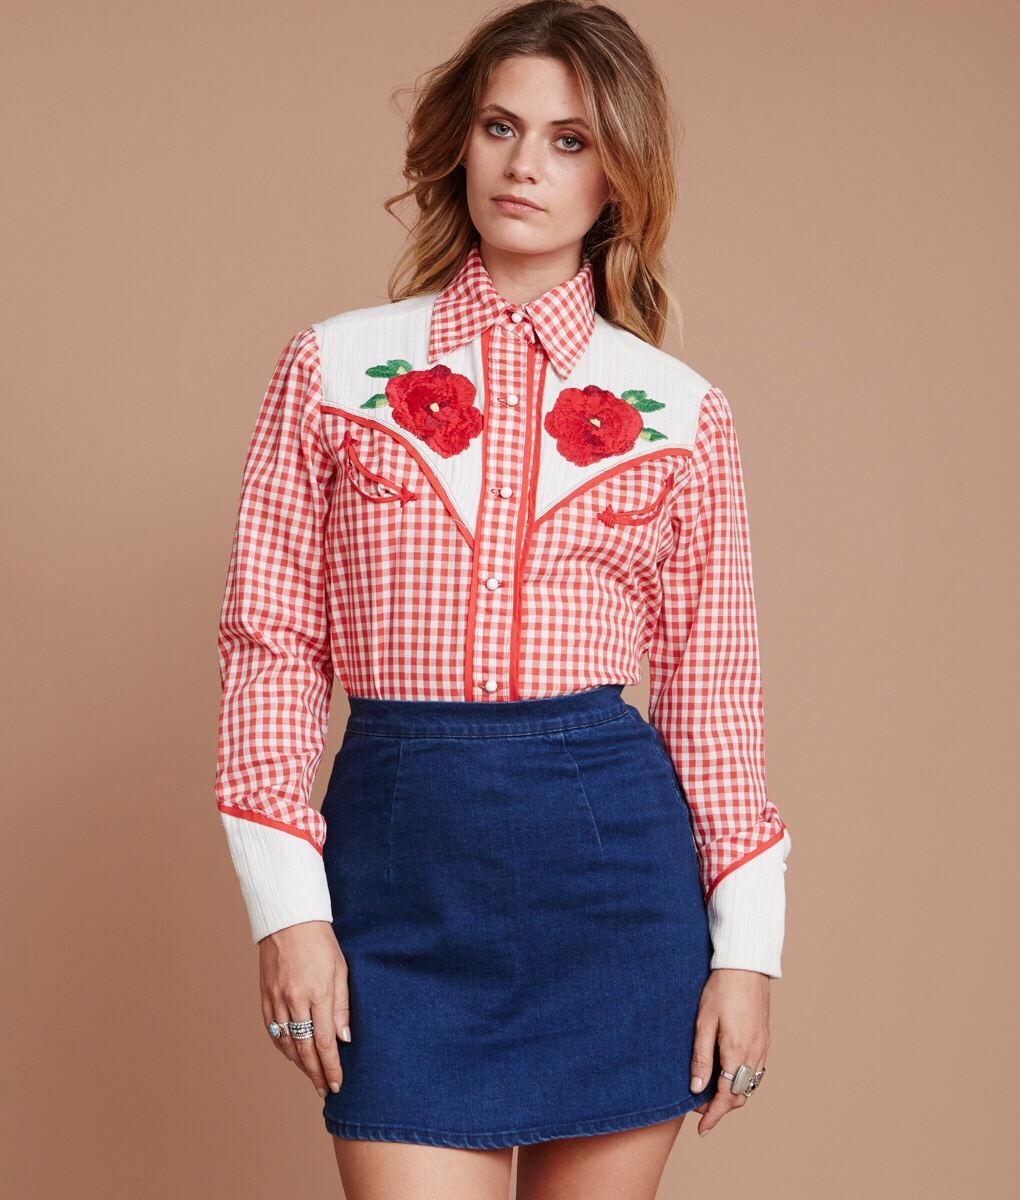 Vintage Embroidered Western Snap Button Shirts are popular in Chicago